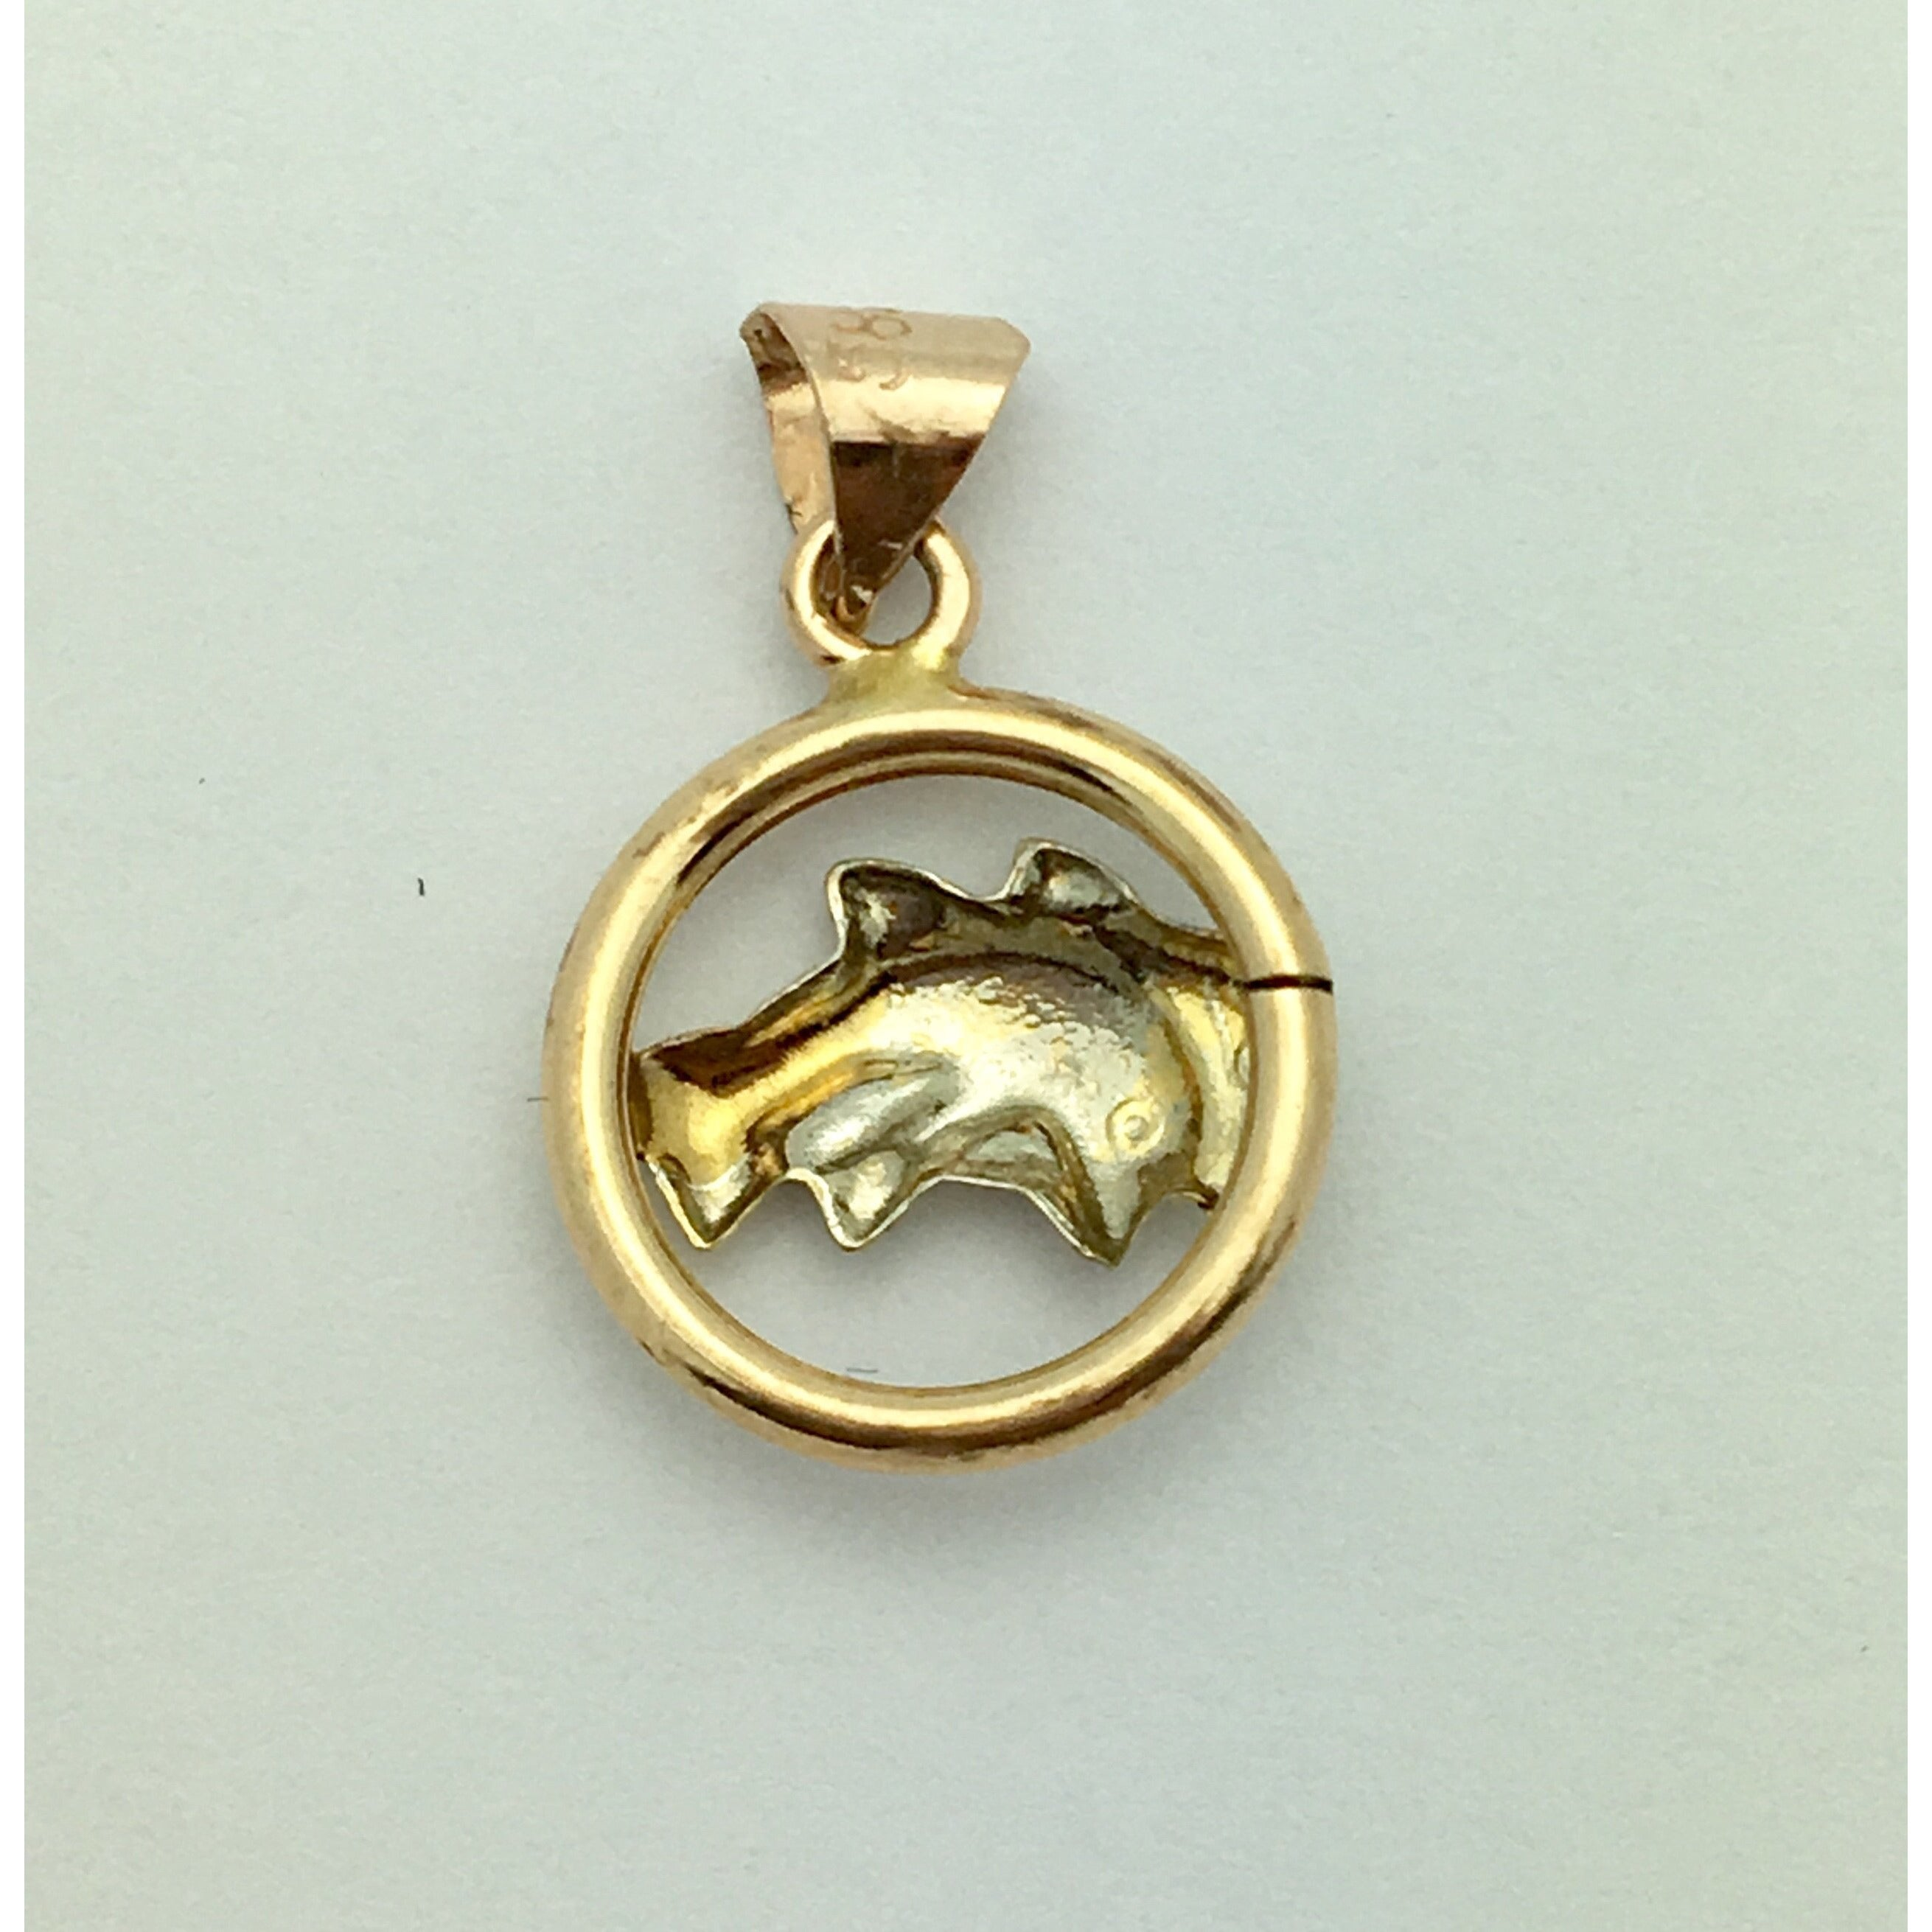 CHARJ020 14K Two Toned Gold Two Dolphins Charm